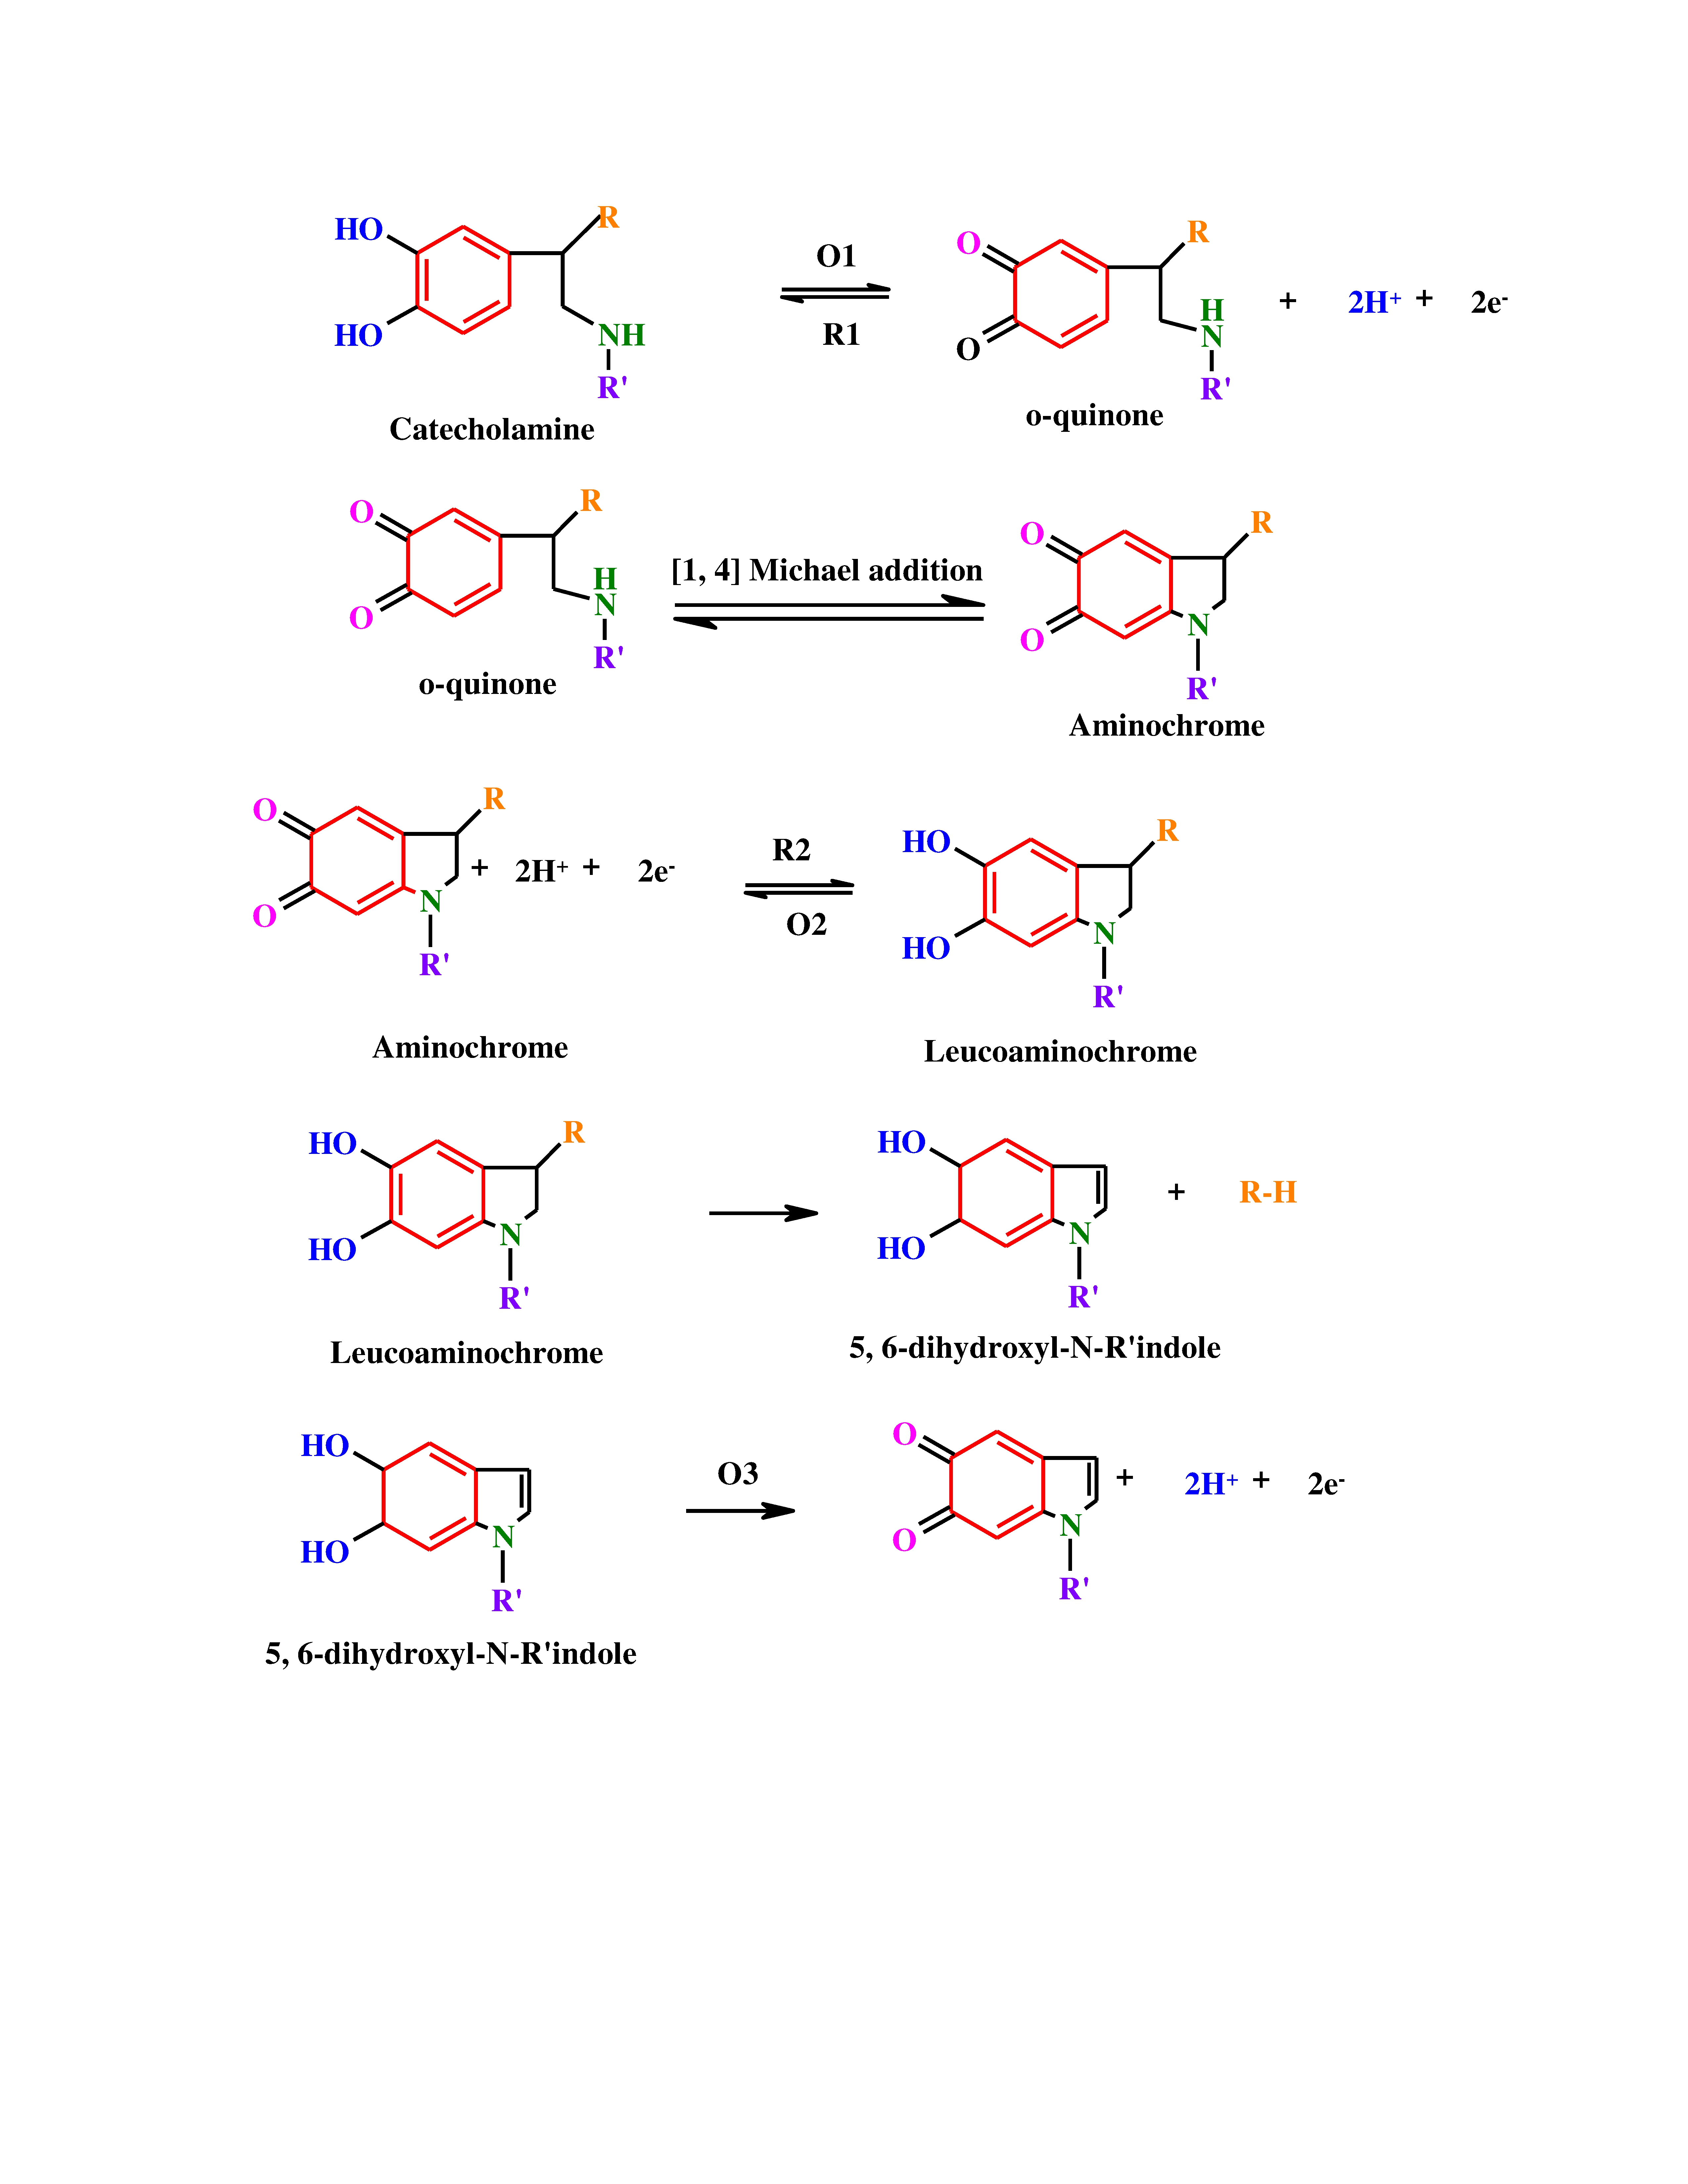 File:Mechanism for catecholamine oxidation-reduction reactions.jpg